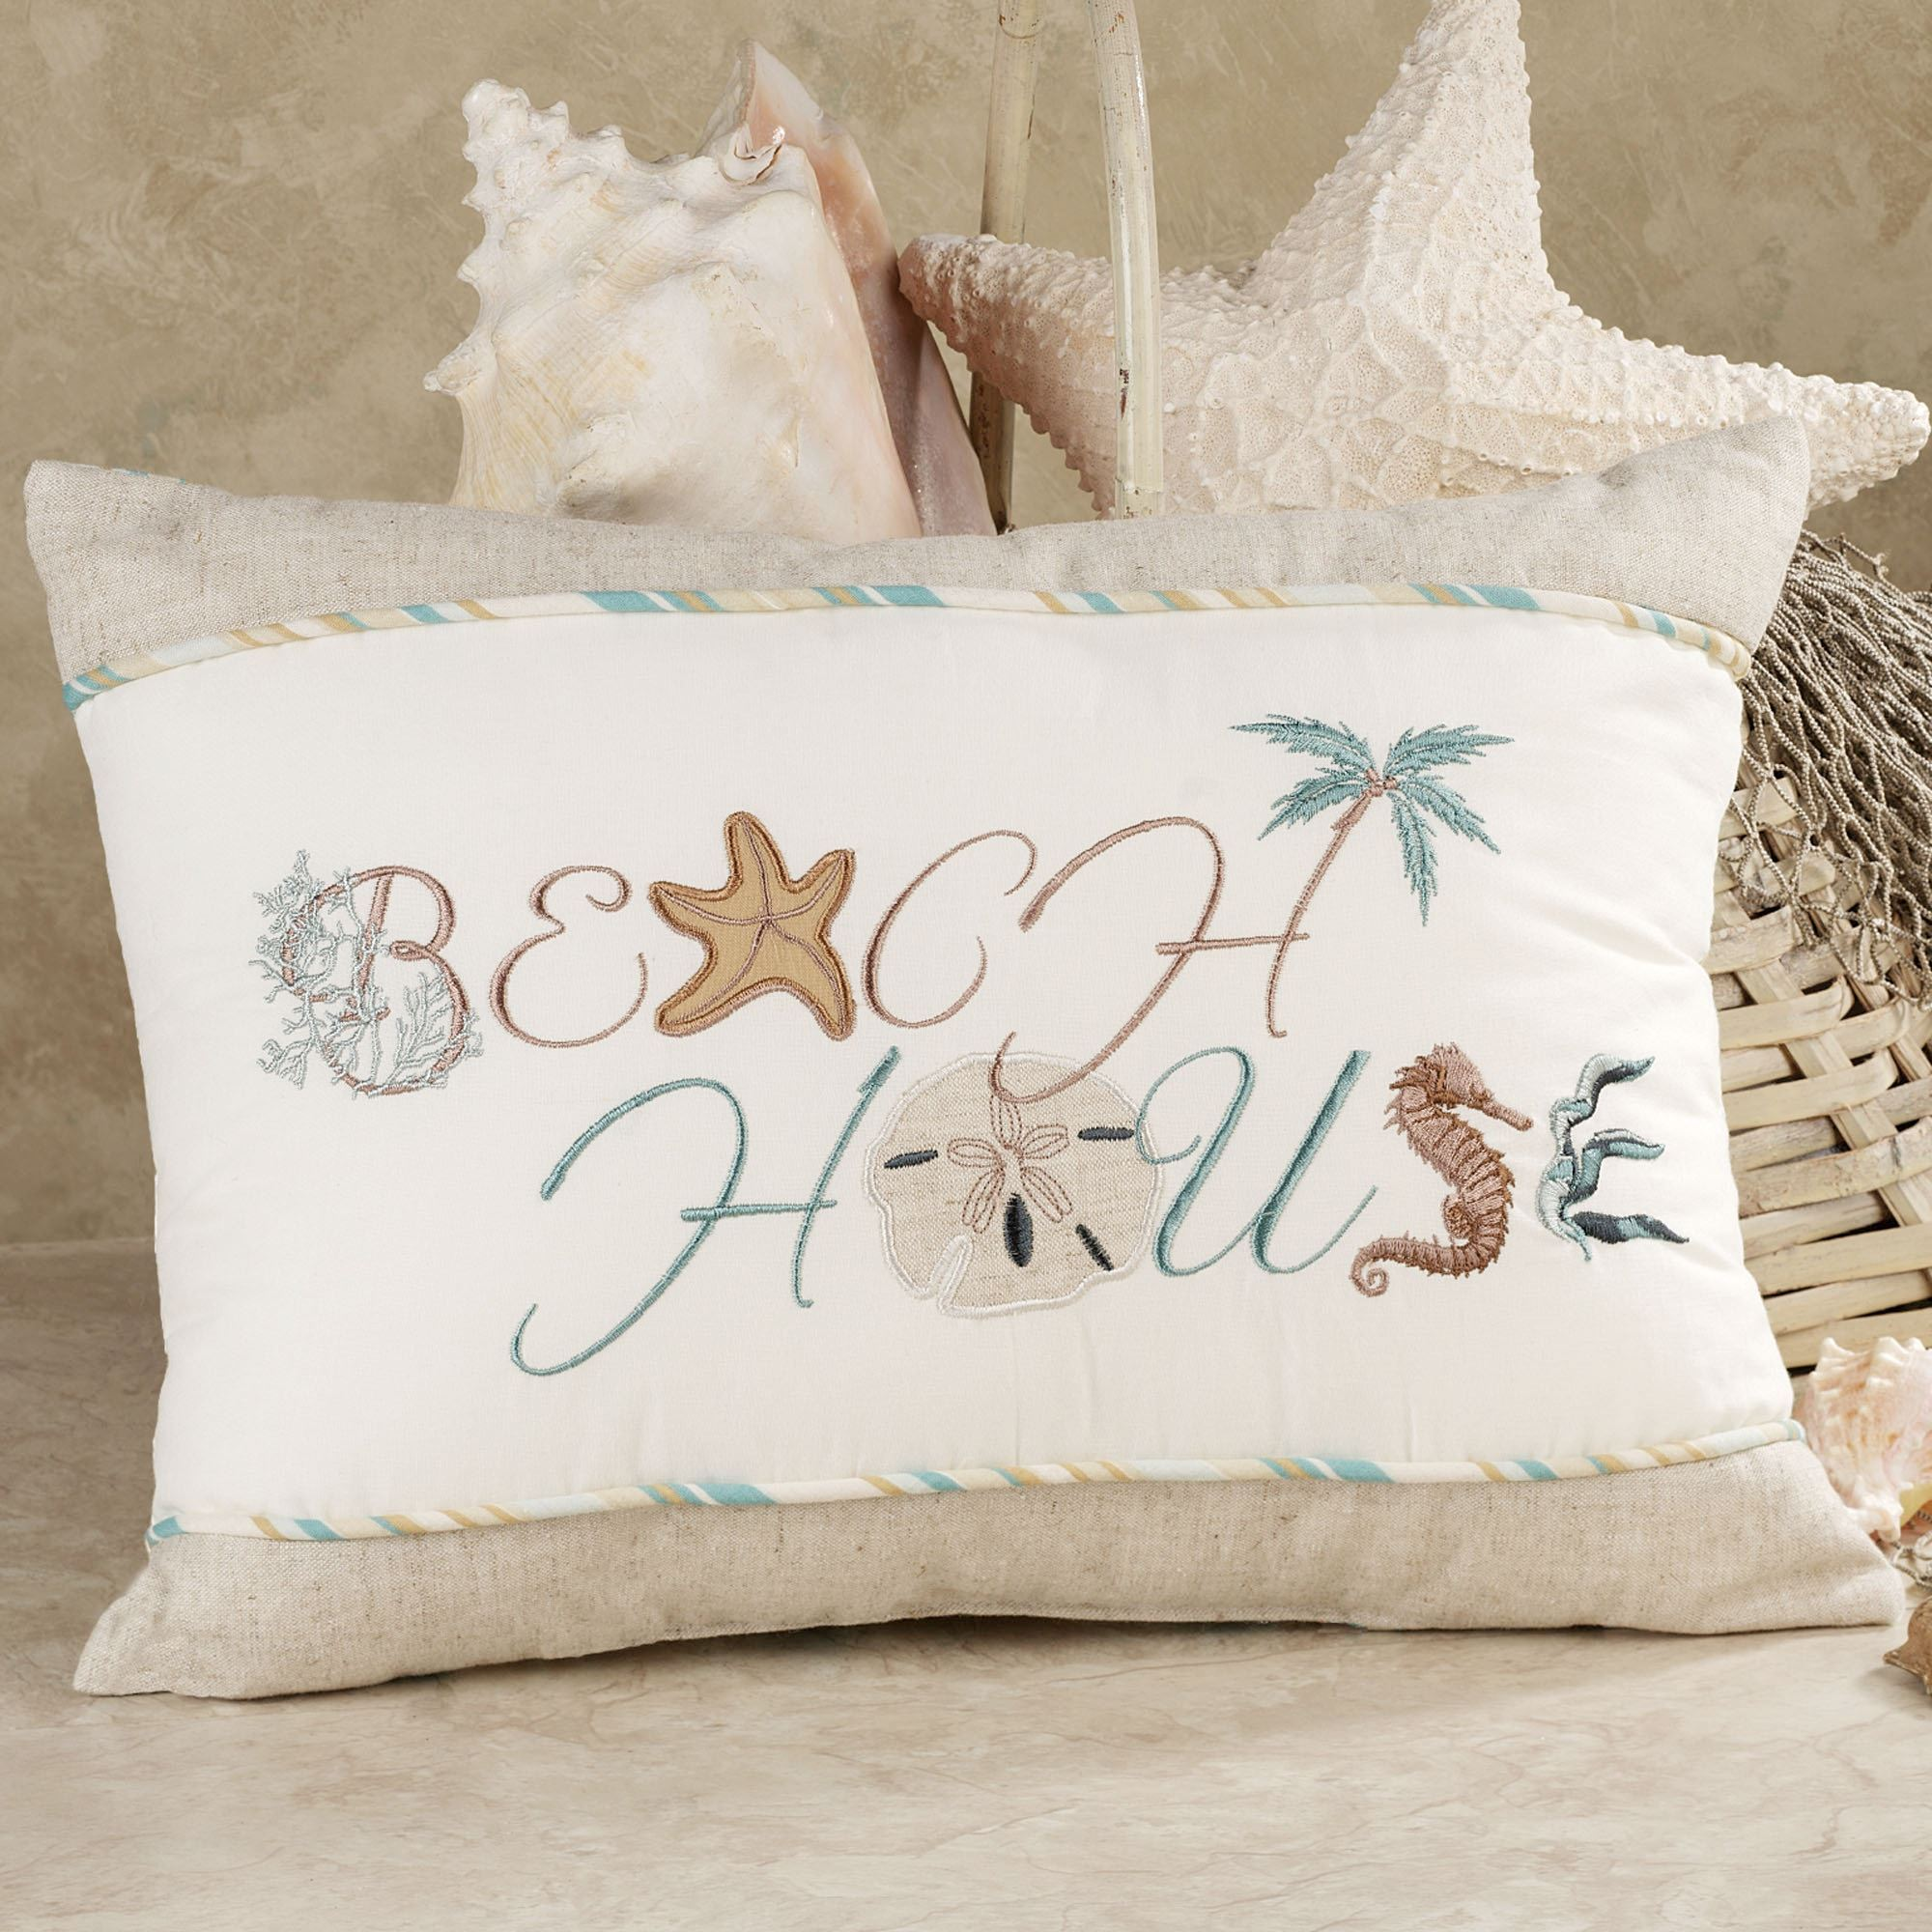 beach d cf pillows nautical decorative home coastal decor f cor c pillow